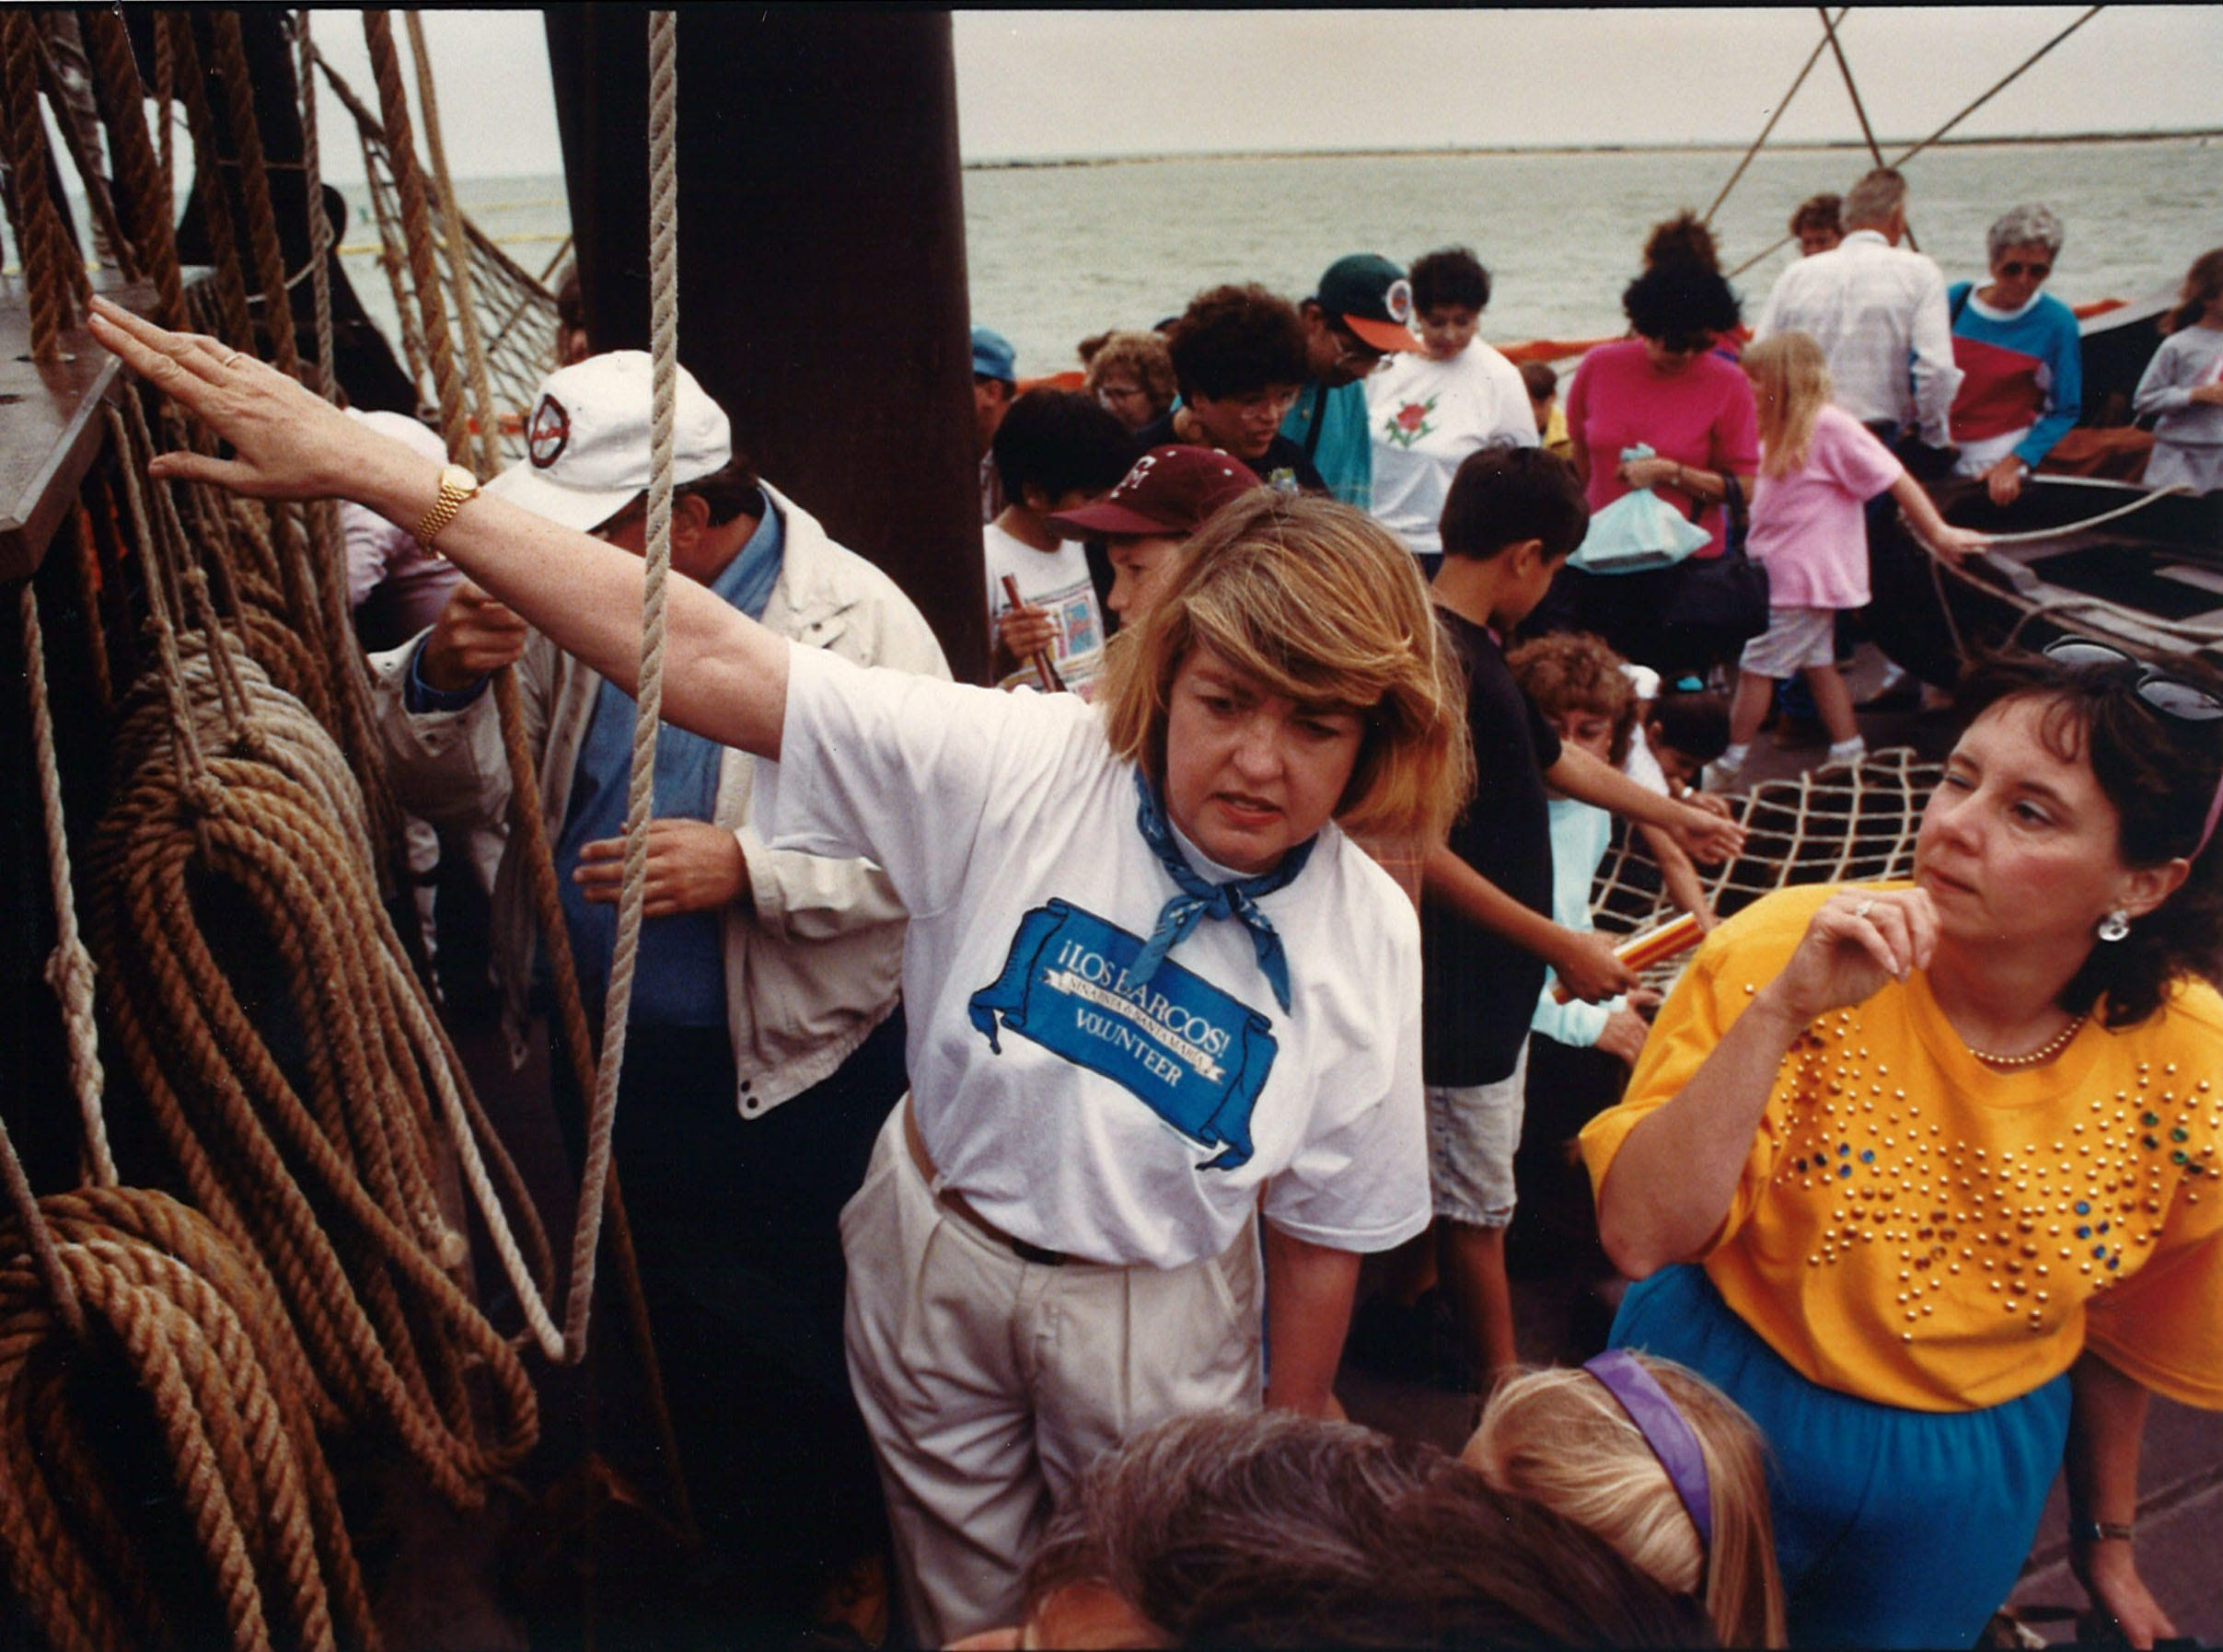 A tour guide explains the ship's rigging during the Los Barcos festival in Corpus Christi in March 1992. The Columbus ship replicas visited the city for 10 days during the 500th anniversary tour of Columbus' voyage to the Americas.